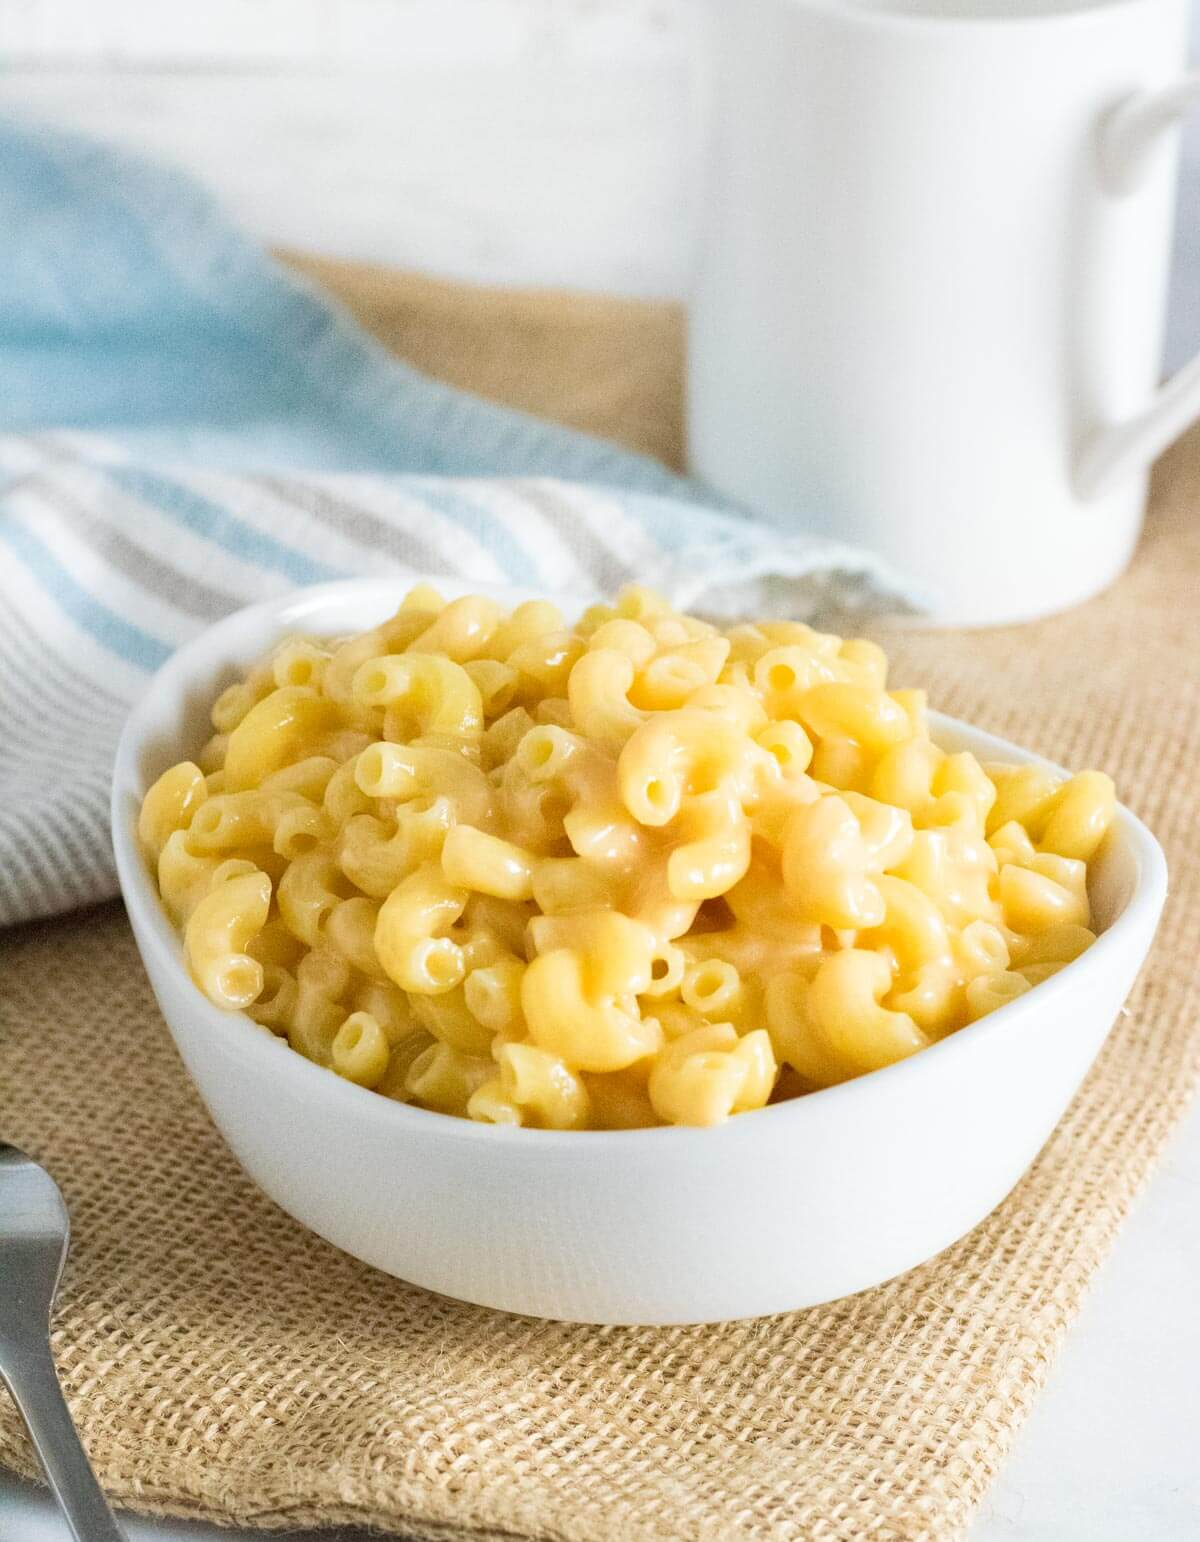 Mac and cheese without milk served in bowl.